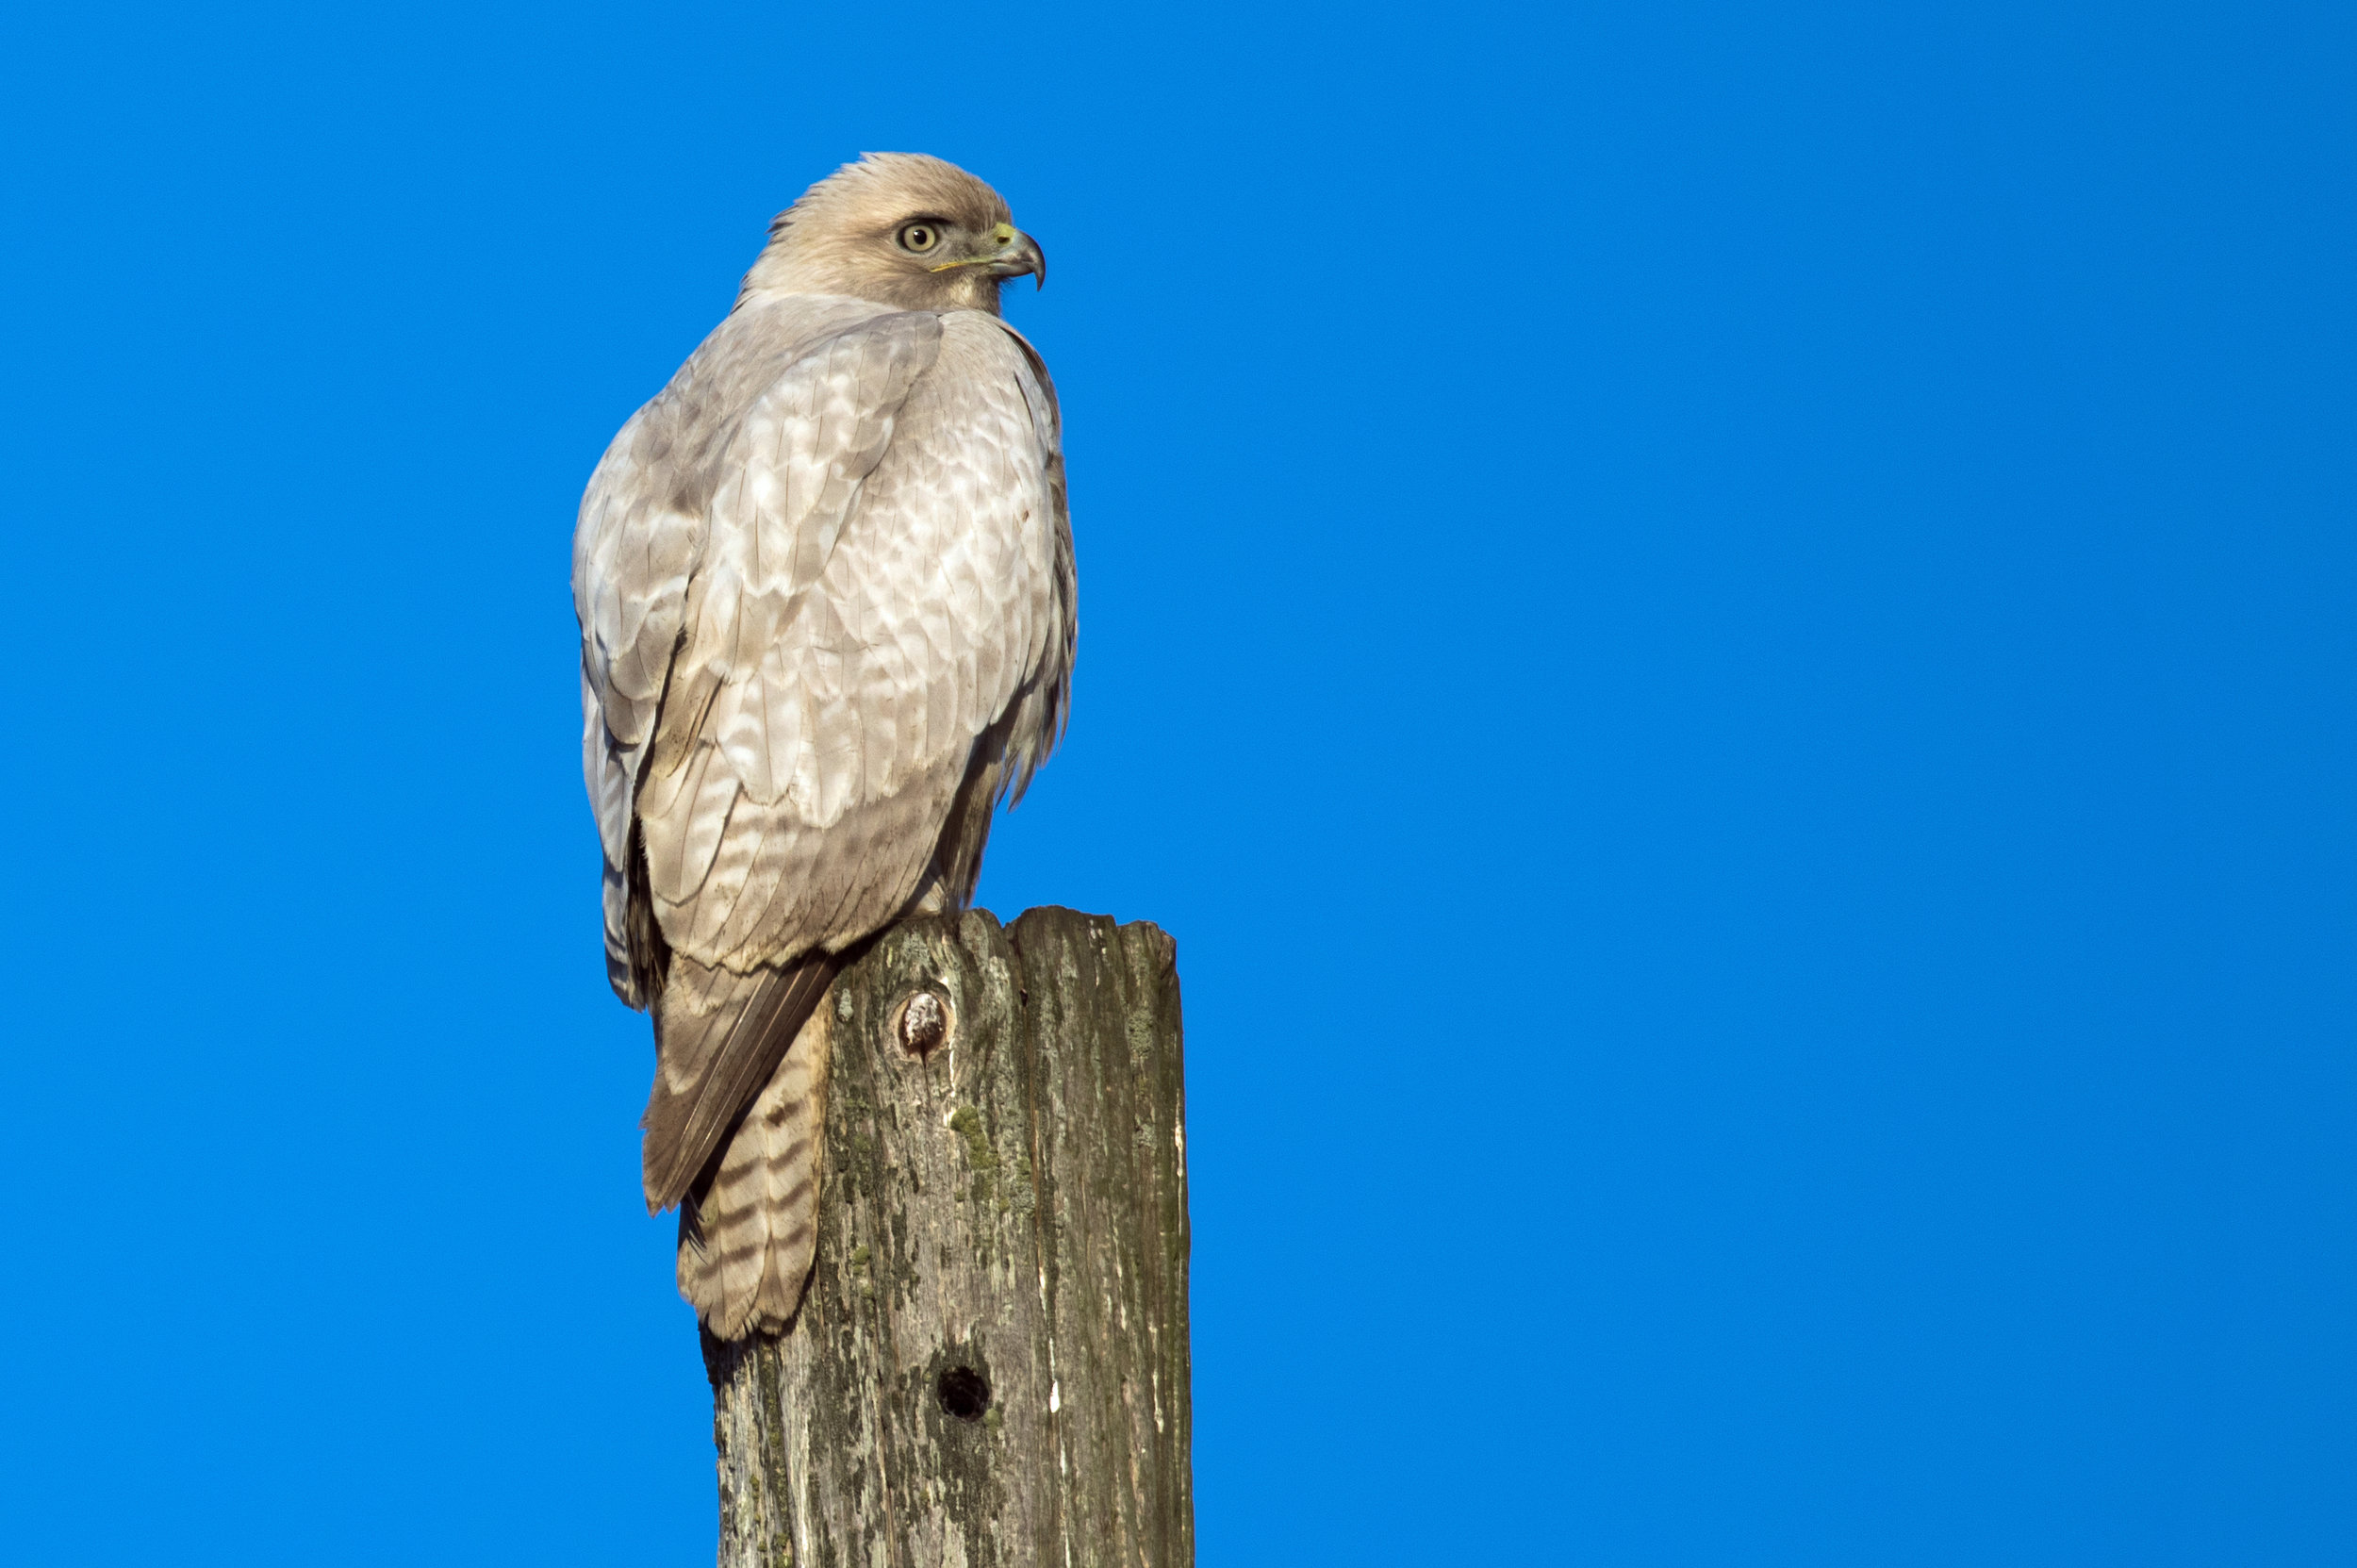 Dilute Plumage Red-tailed Hawk